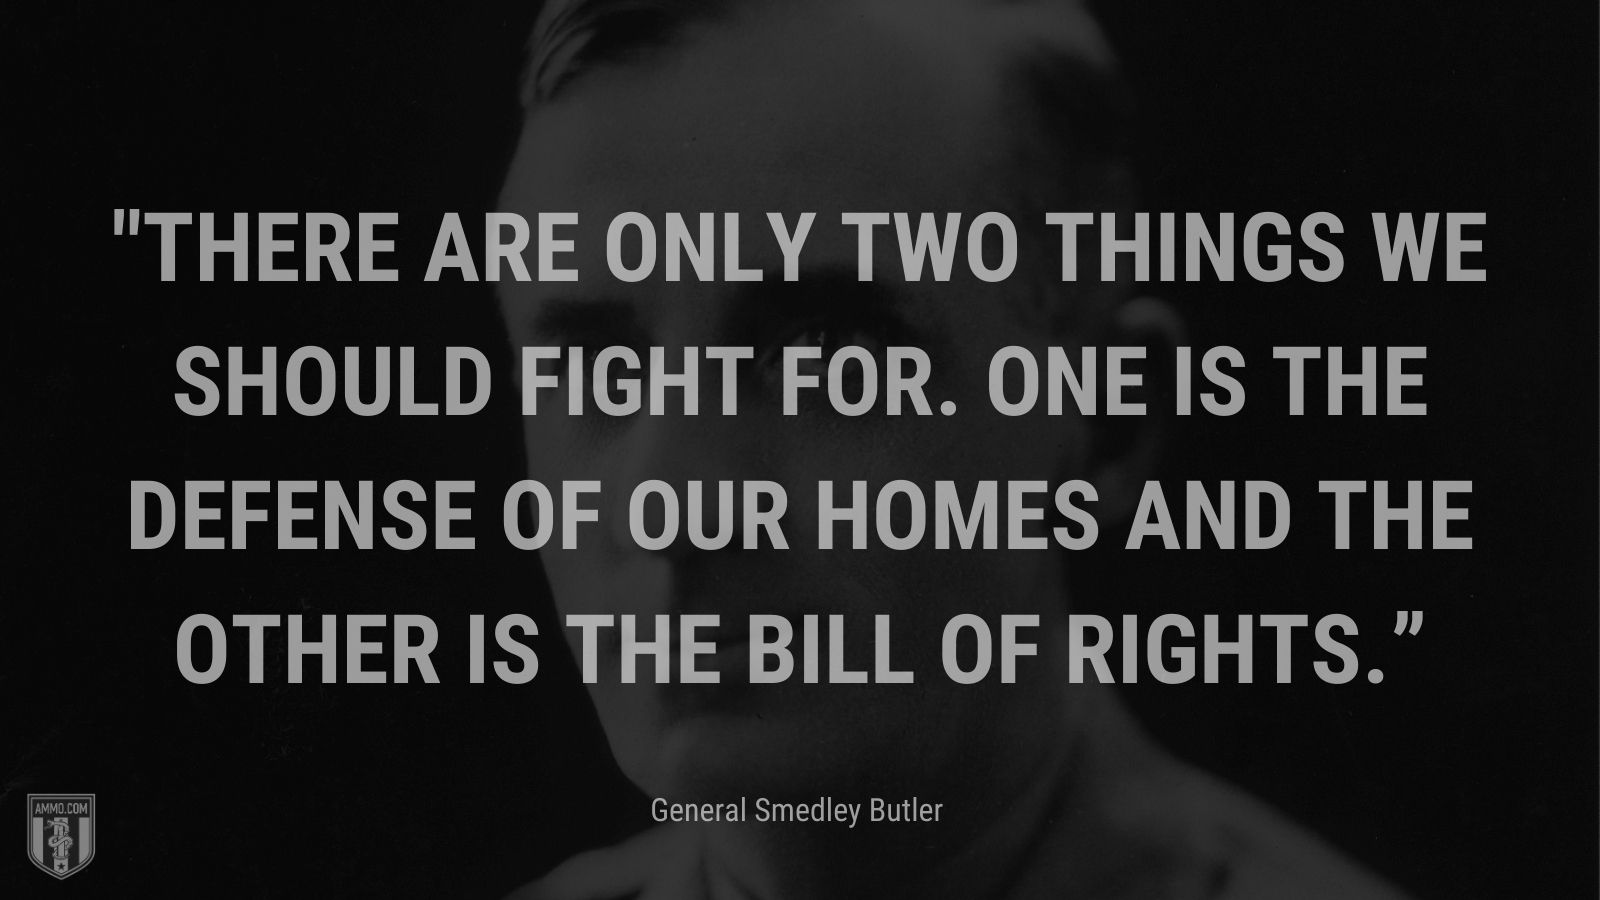 """""""There are only two things we should fight for. One is the defense of our homes and the other is the Bill of Rights."""" - General Smedley Butler"""